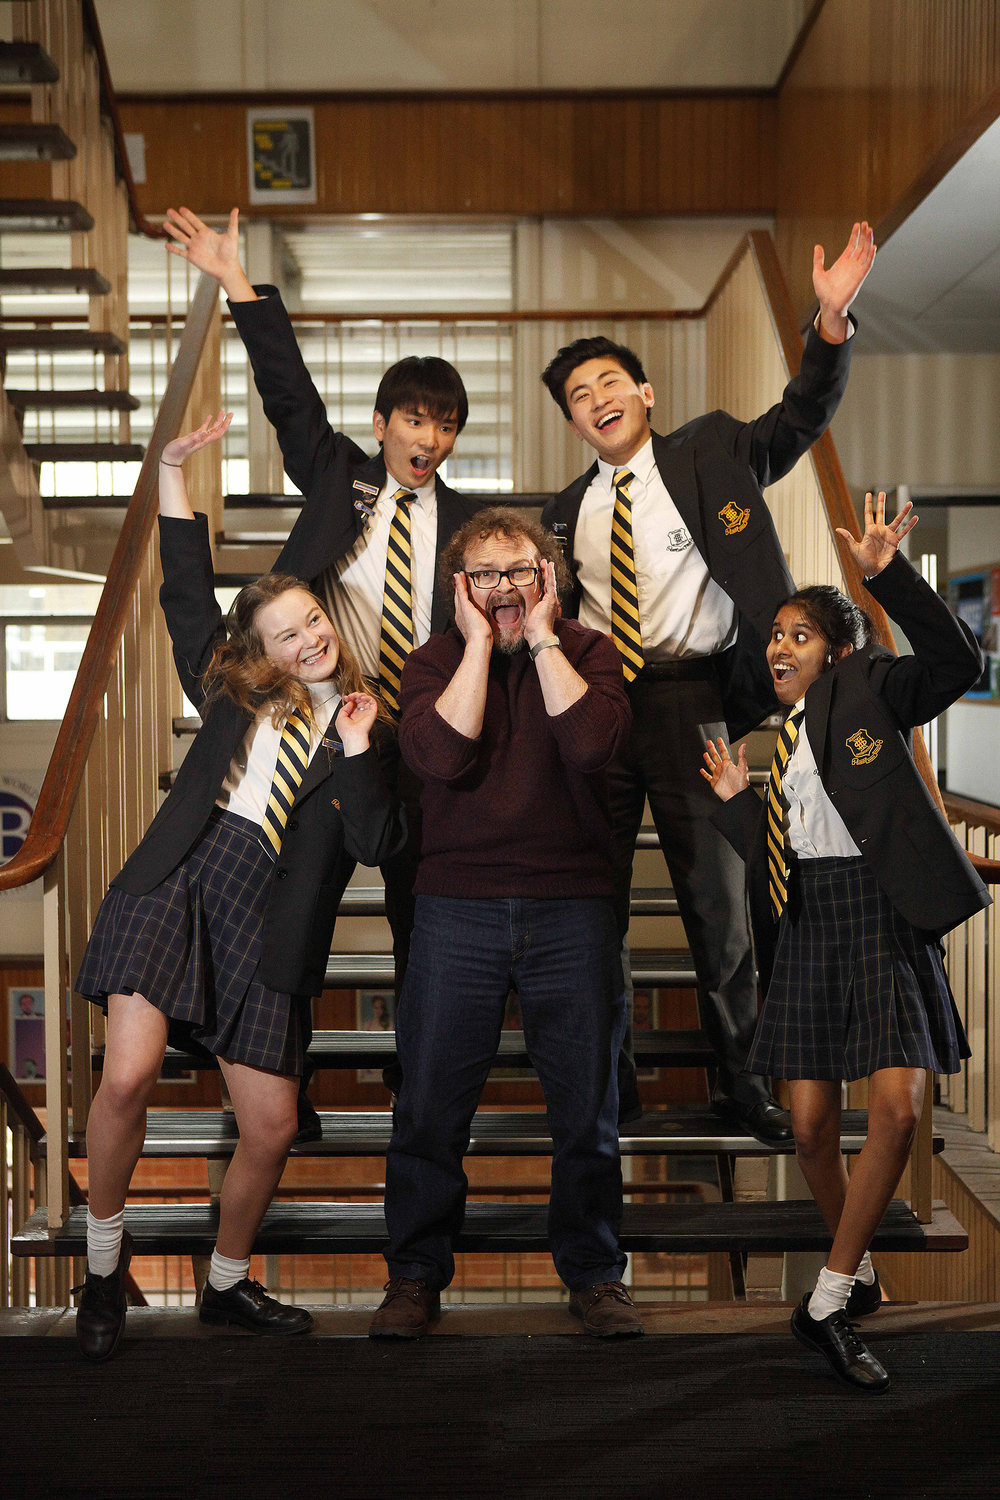 CHP_Export_123323223_Glenunga International High School has replaced the traditional school bell wit.jpg